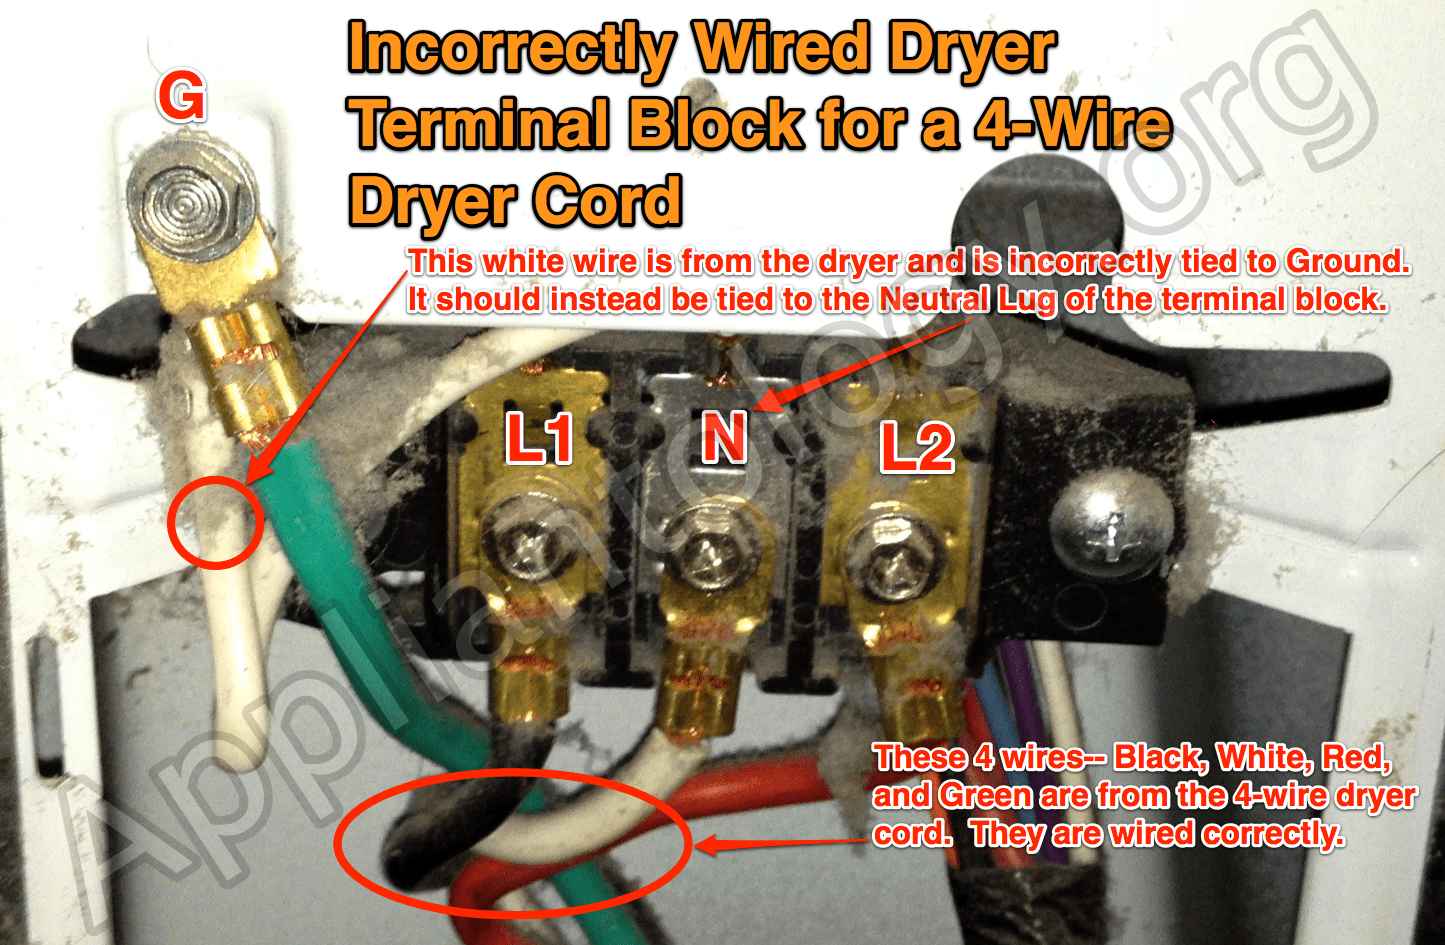 samsung dryer wiring diagram moen bathroom faucet incorrectly wired terminal block for a 4 wire